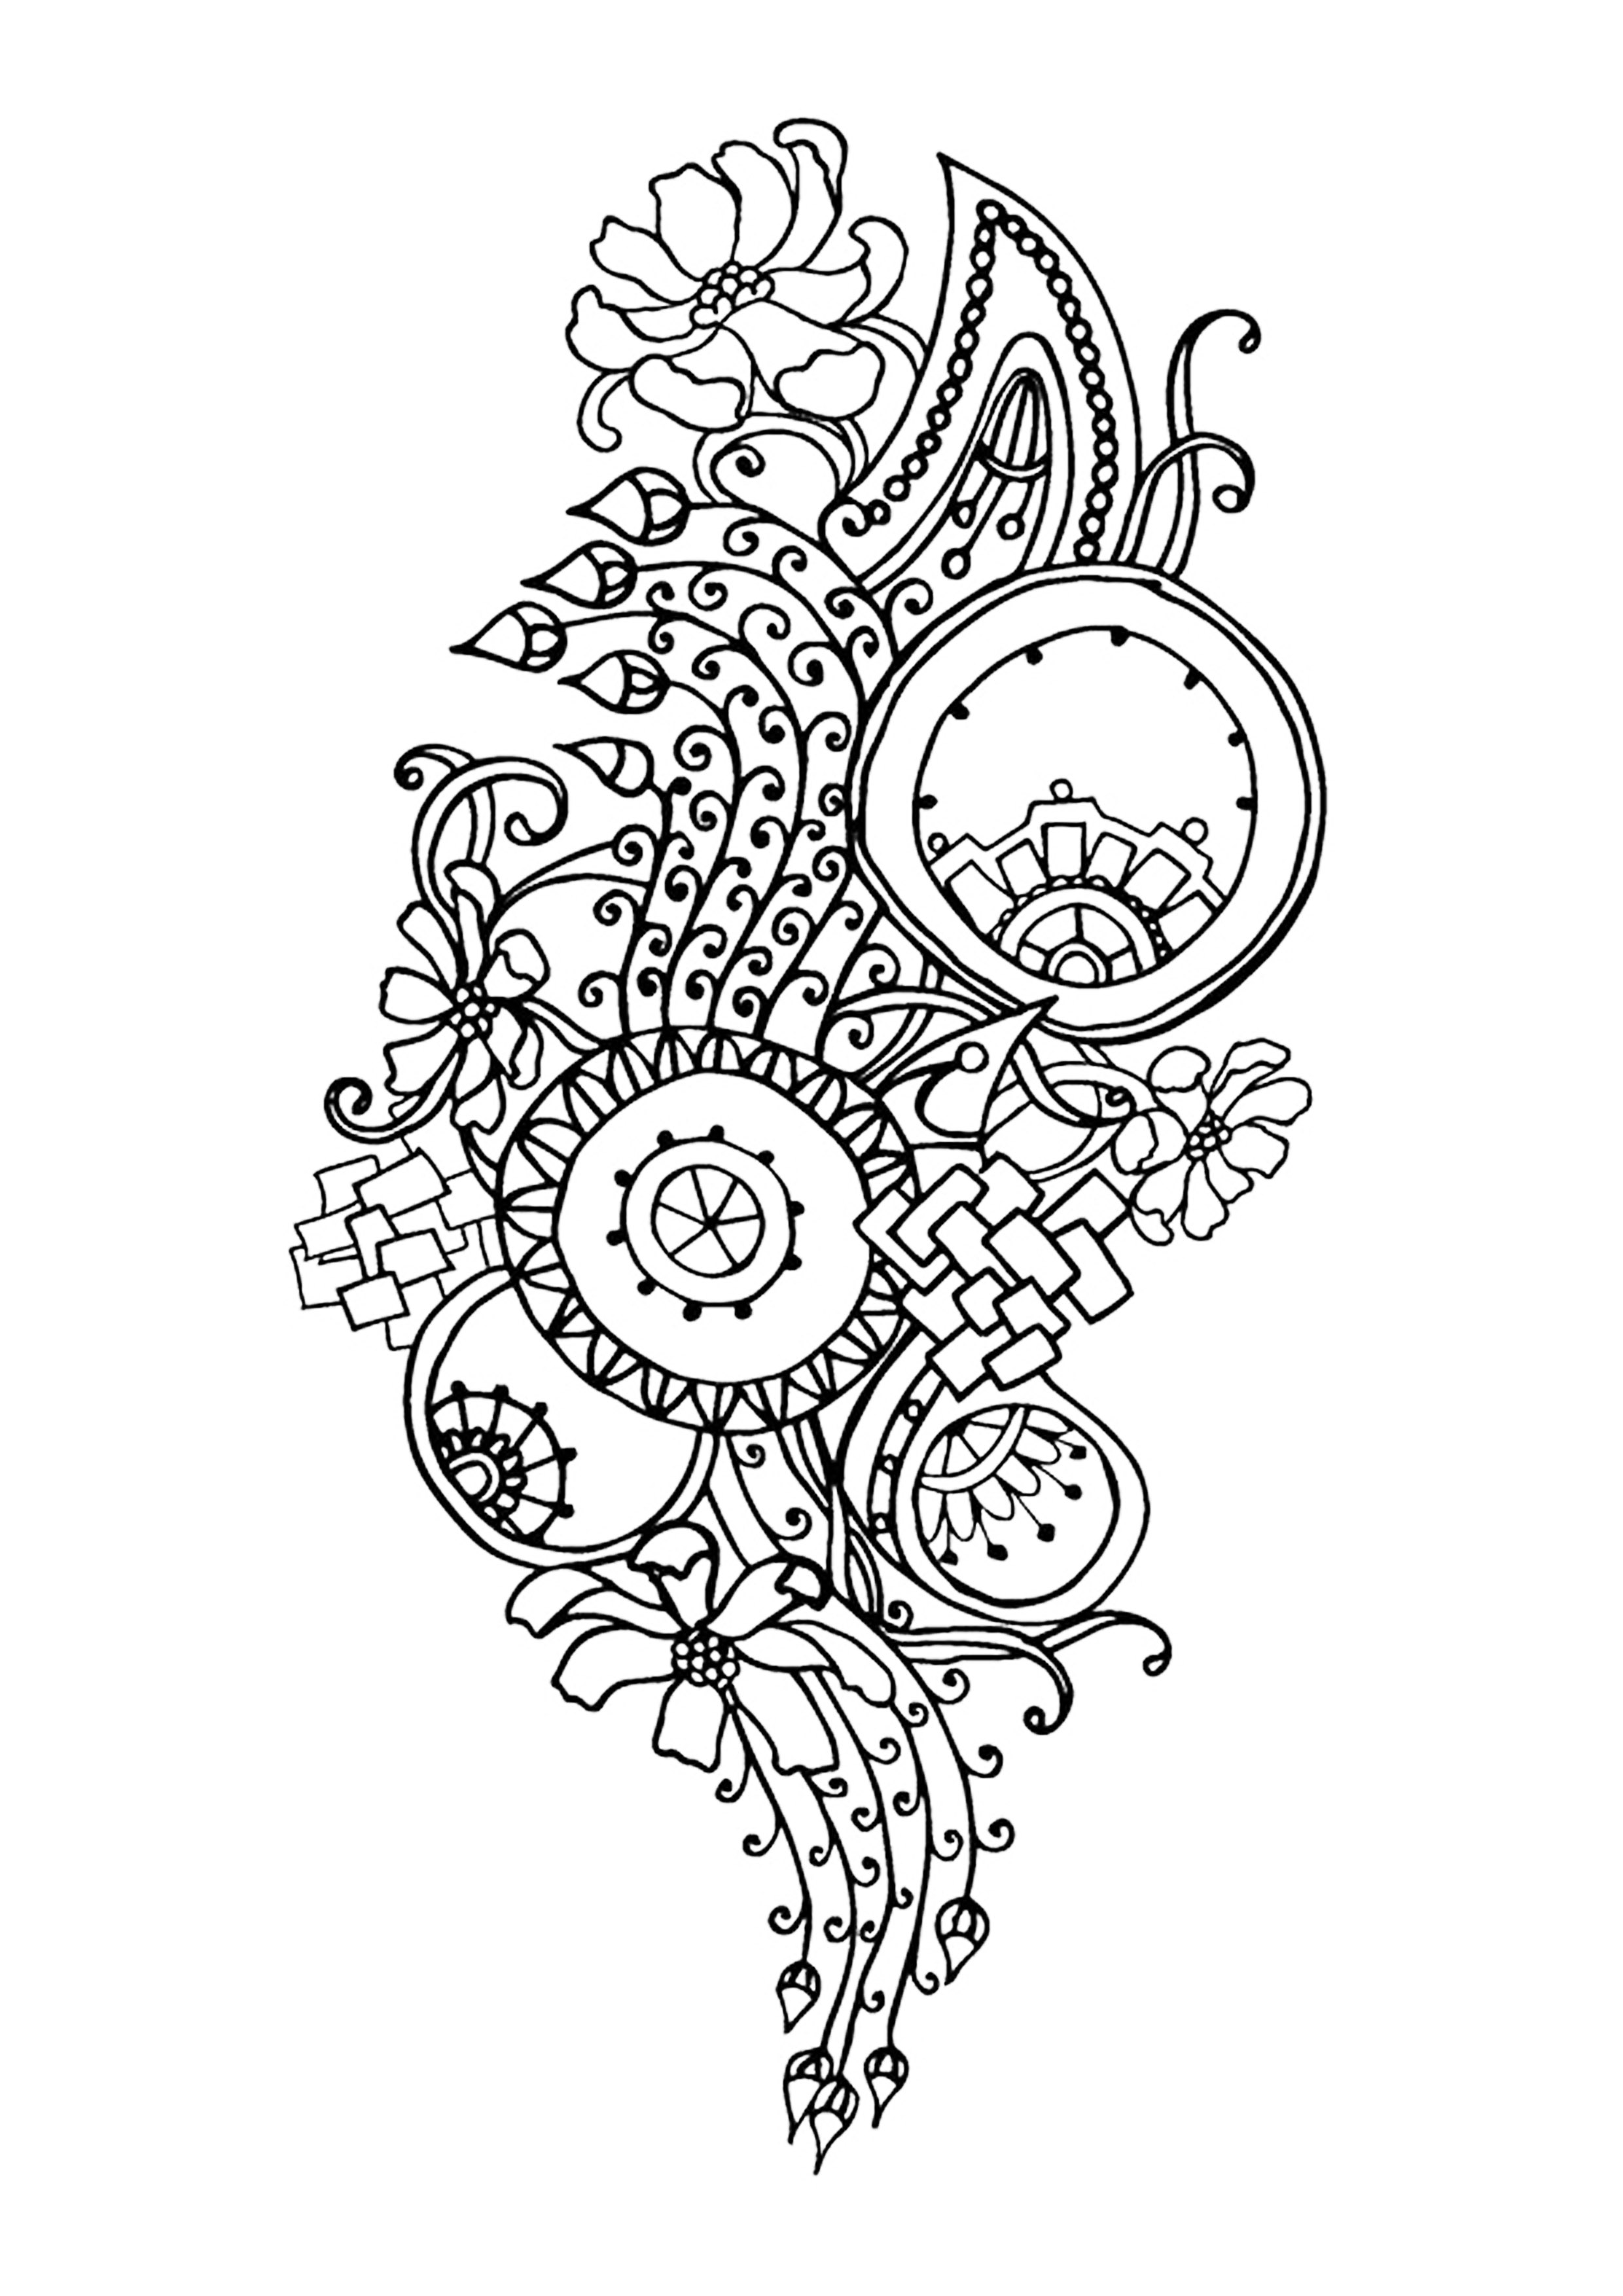 coloring pages for adults to print flowers flower coloring pages for adults best coloring pages for to for flowers coloring pages adults print